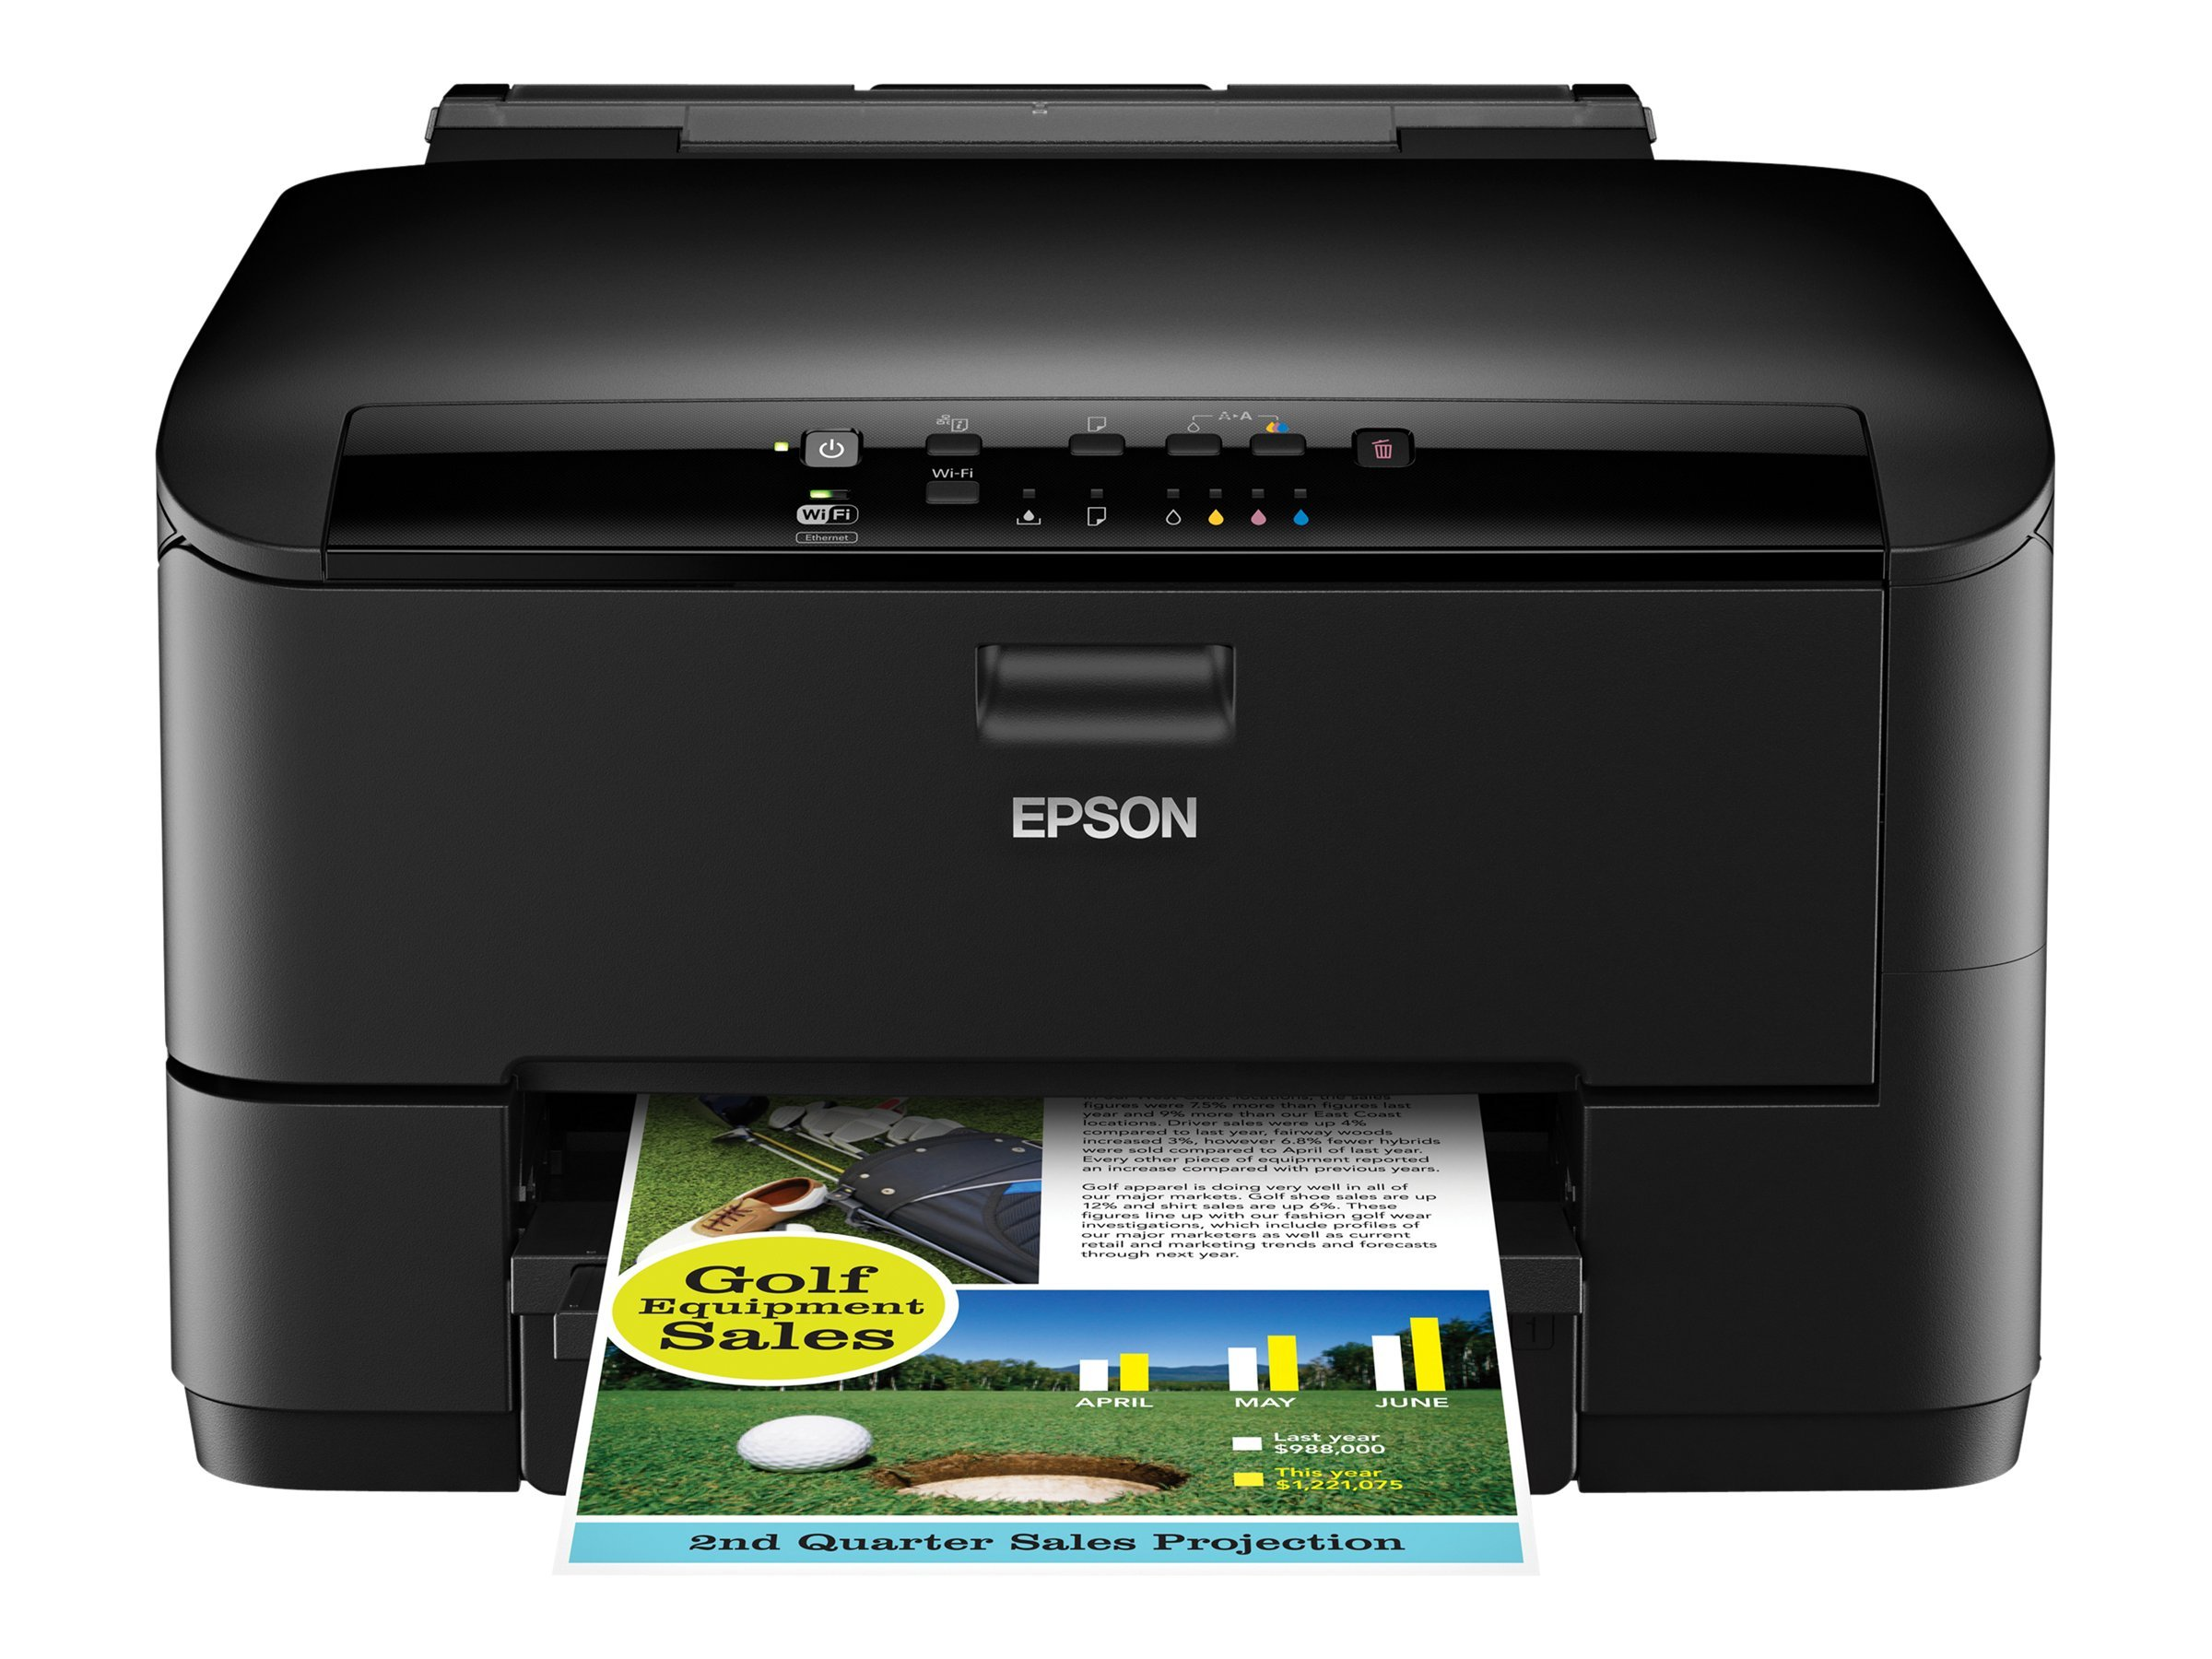 Epson WorkForce Pro WP-4020 Inkjet Printer - $149.99 less instant rebate of $37.00